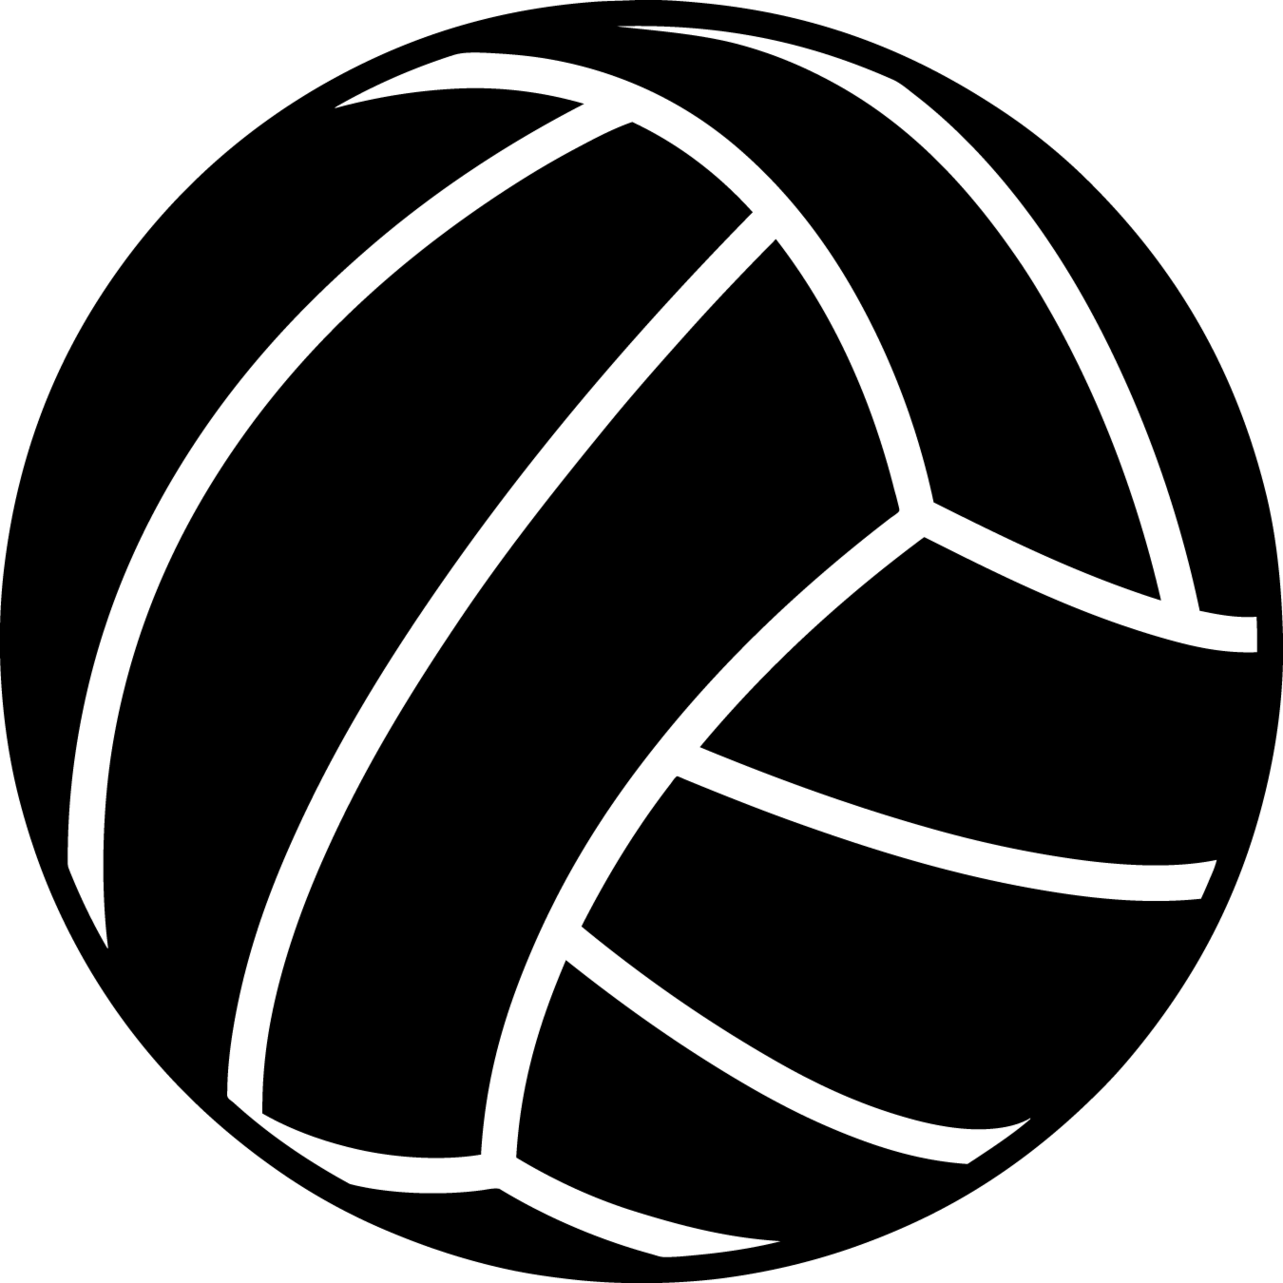 Clipart png volleyball. Transparent images pluspng